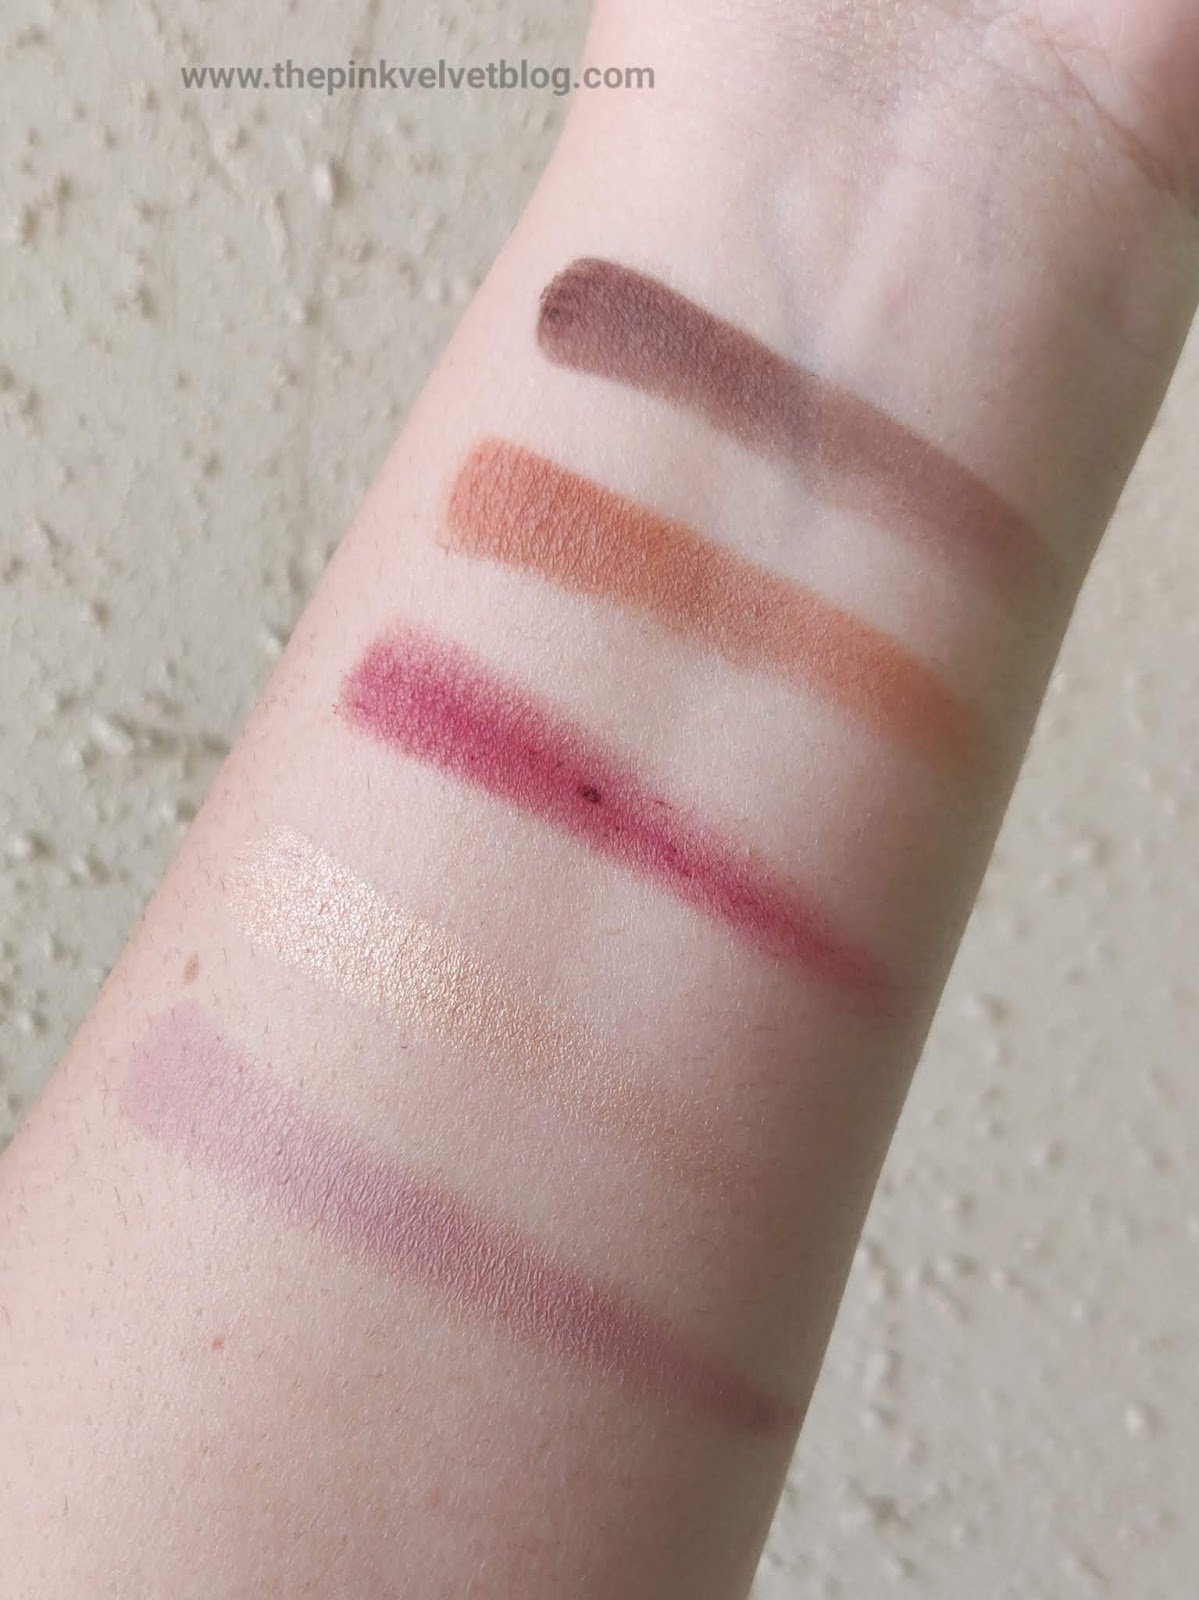 Top 5 Eyeshadow Palettes in India under Rs.1000/- and their Swatches - Wet n Wild Rose in the Air - Swatches